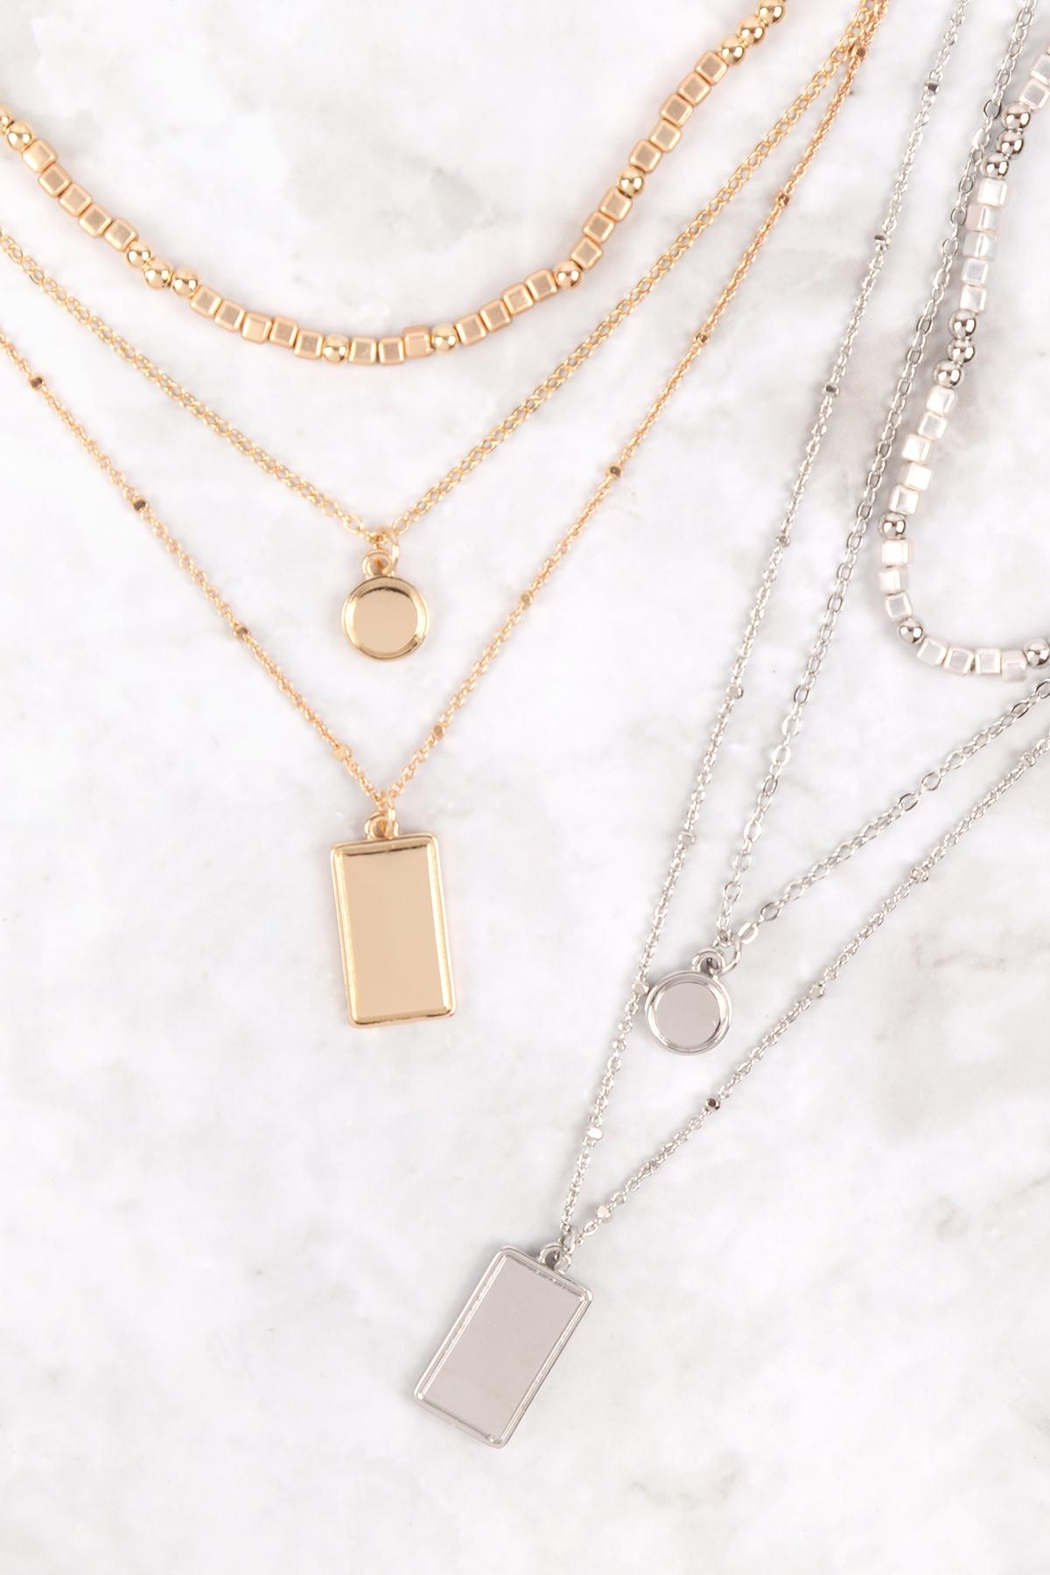 Riah Fashion Square-Round-Pendant-Layered-Mix-Chain-Necklace - Side Cropped Image